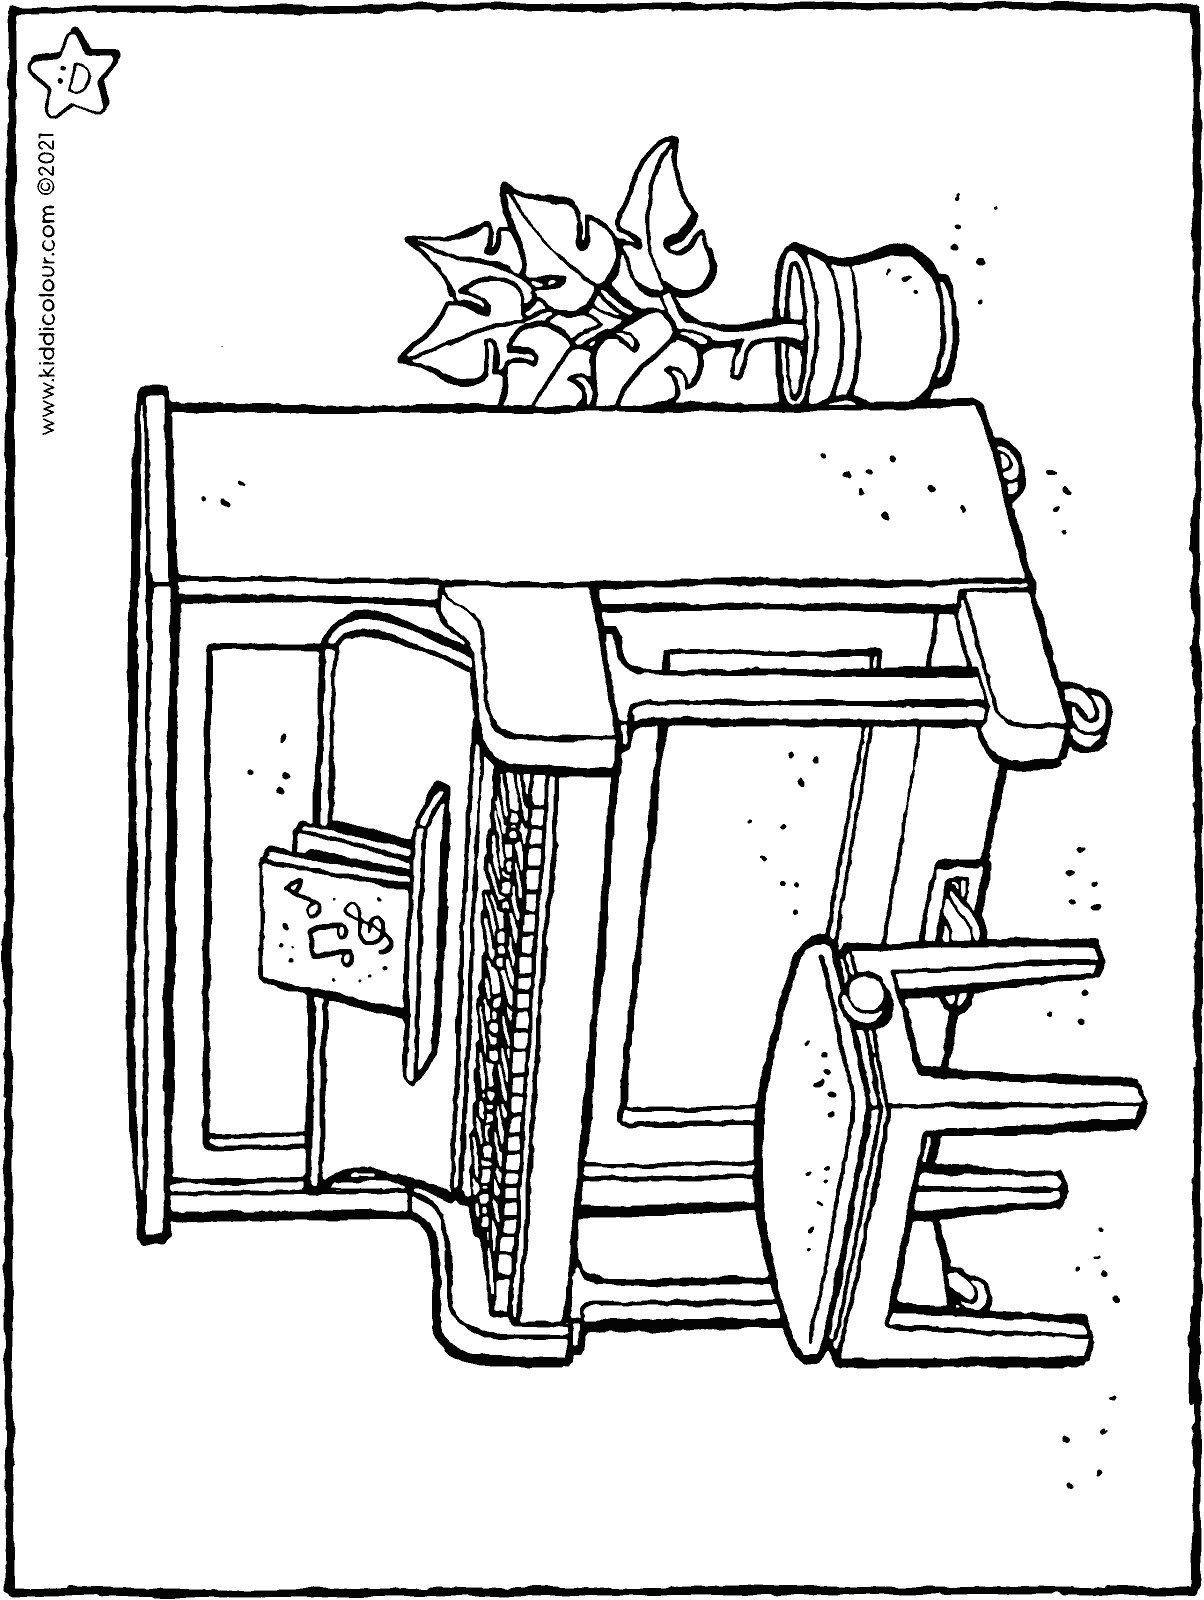 piano colouring page drawing picture 01H